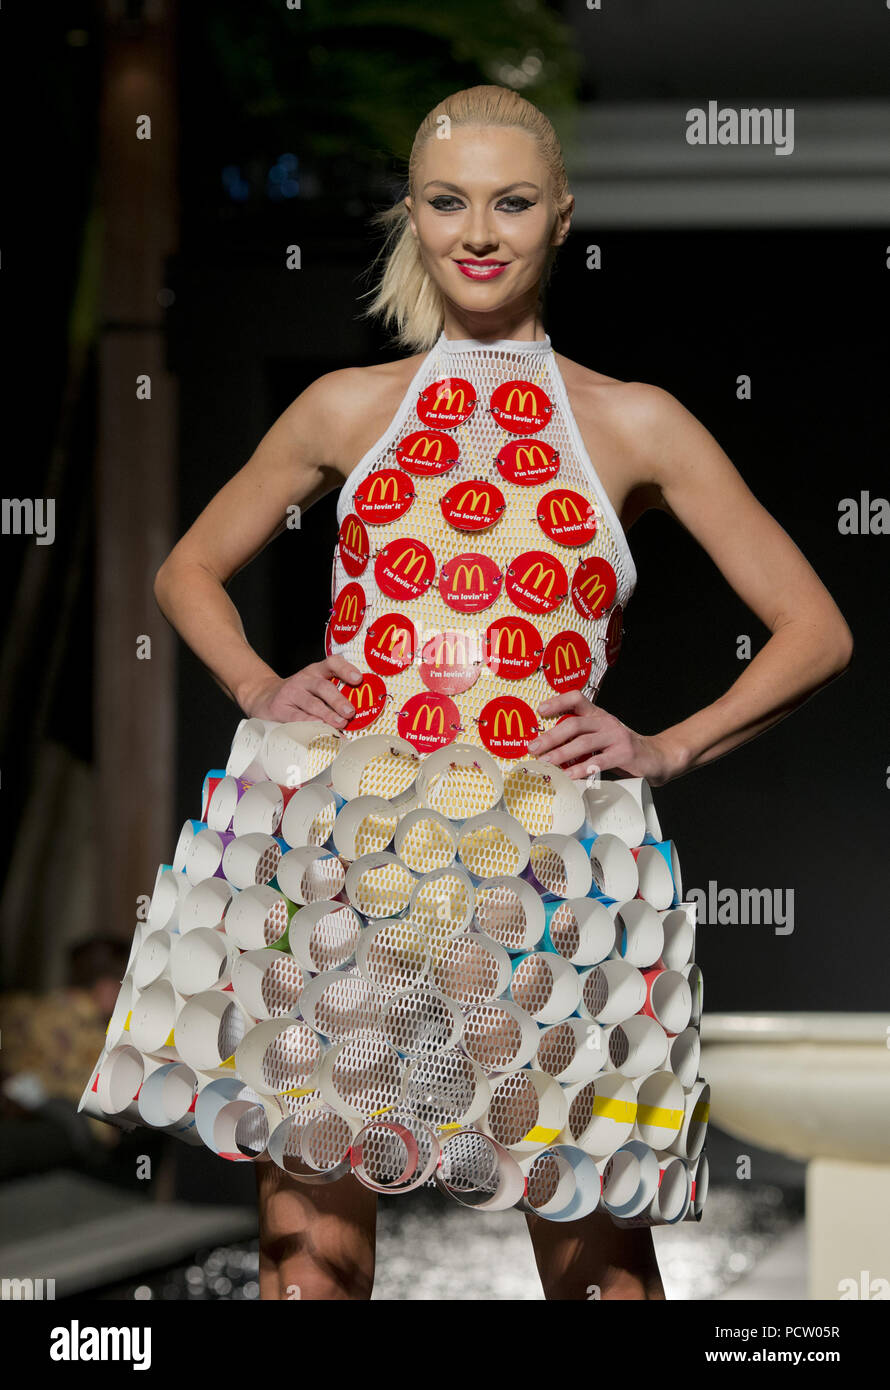 Miami Beach Fl November 05 Mcdonalds Left The Audience Hungry For More Mcdcouture At Funkshion Fashion Week Miami Beach One Of 20 One Of A Kind Designs Created From Mcdonalds Packaging And Paper Goods